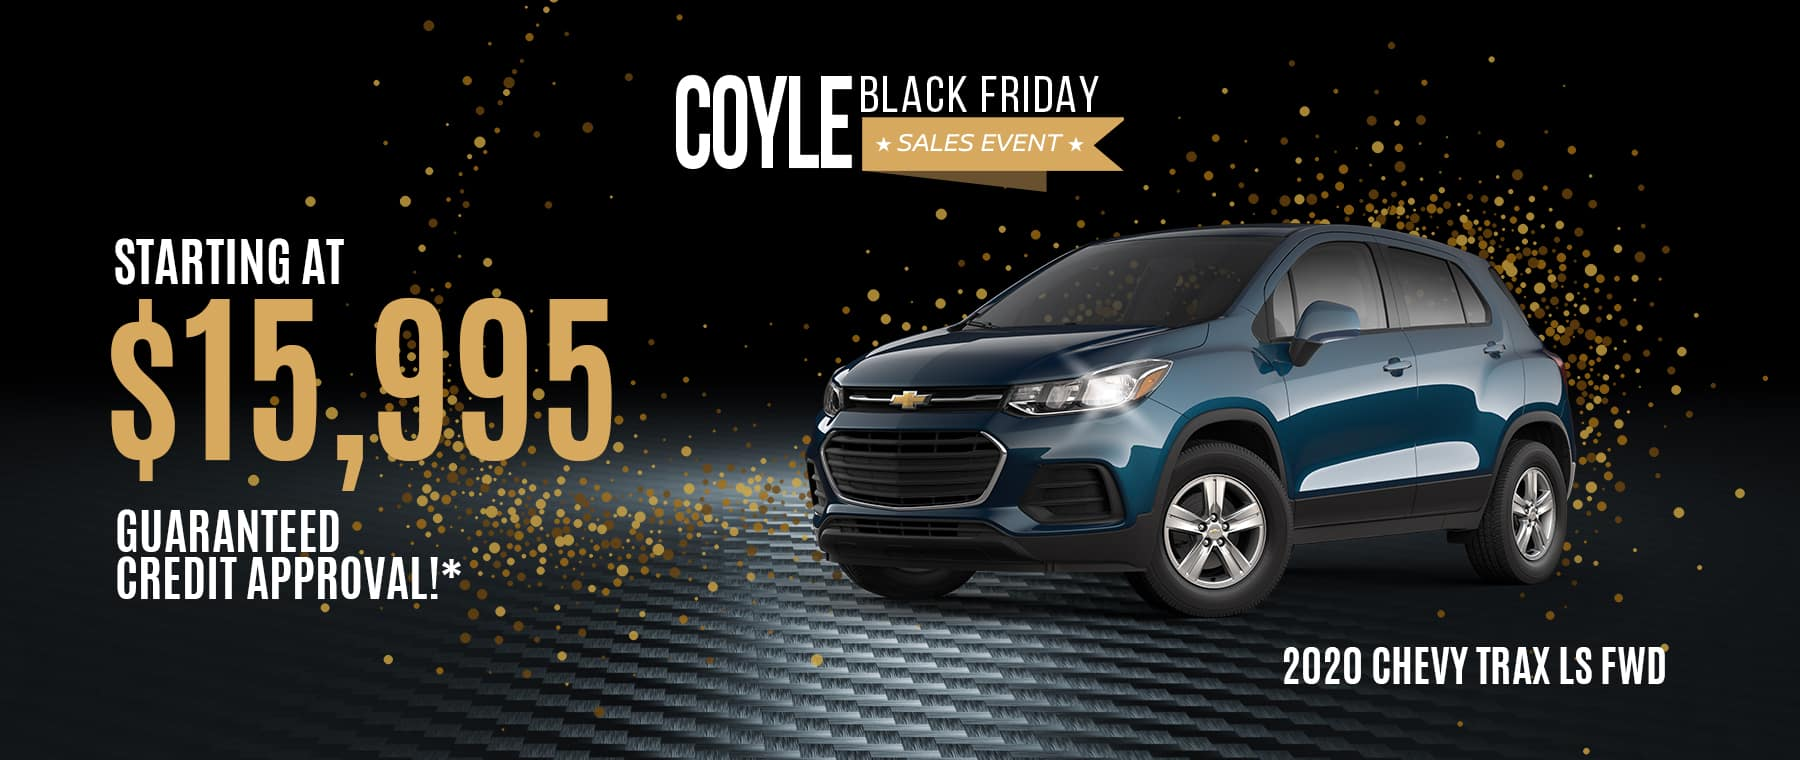 Special Pricing on New Chevrolet Trax near New Albany, Indiana